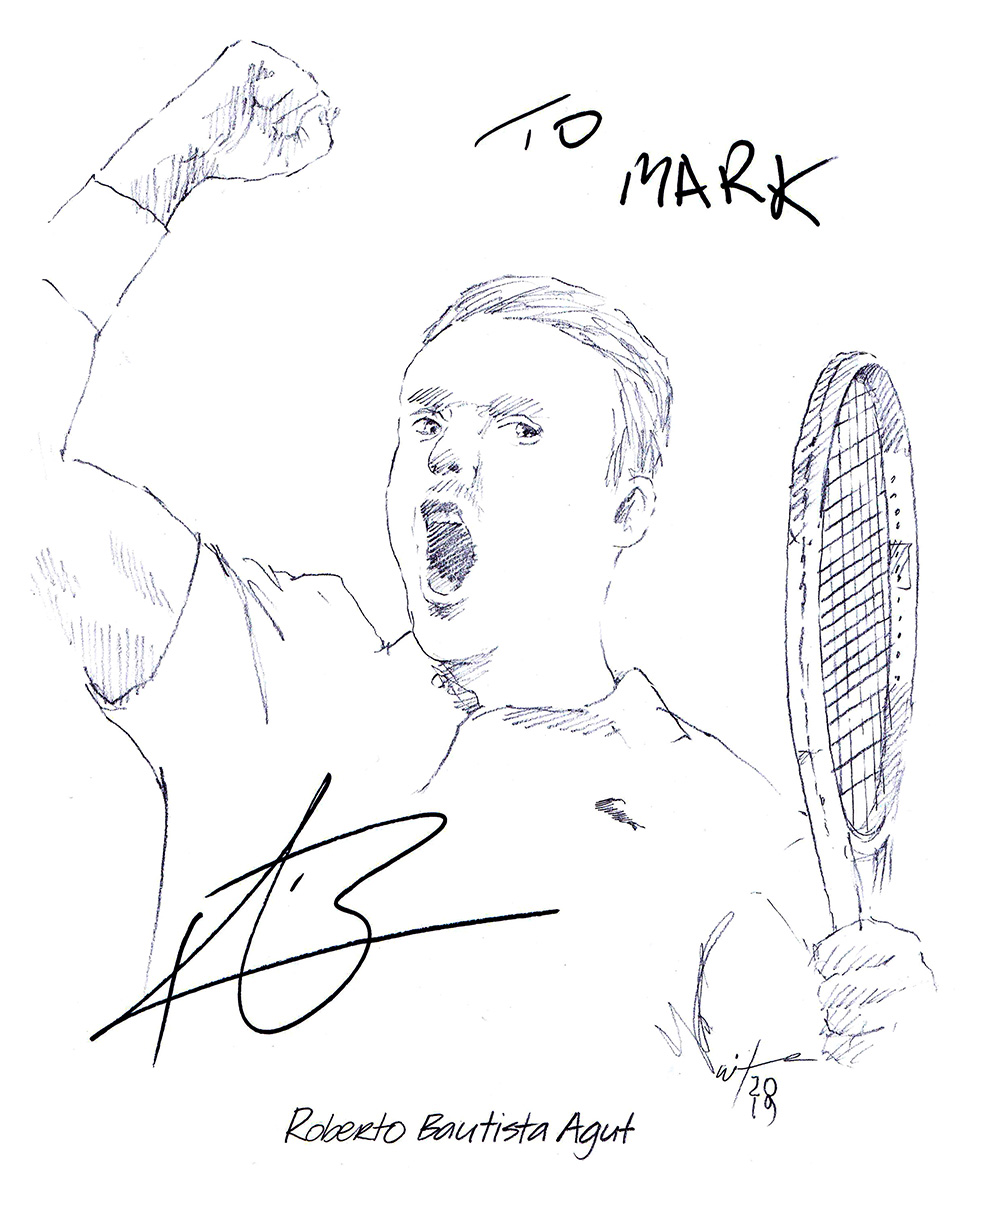 Autographed drawing of tennis player Roberto Bautista Agut